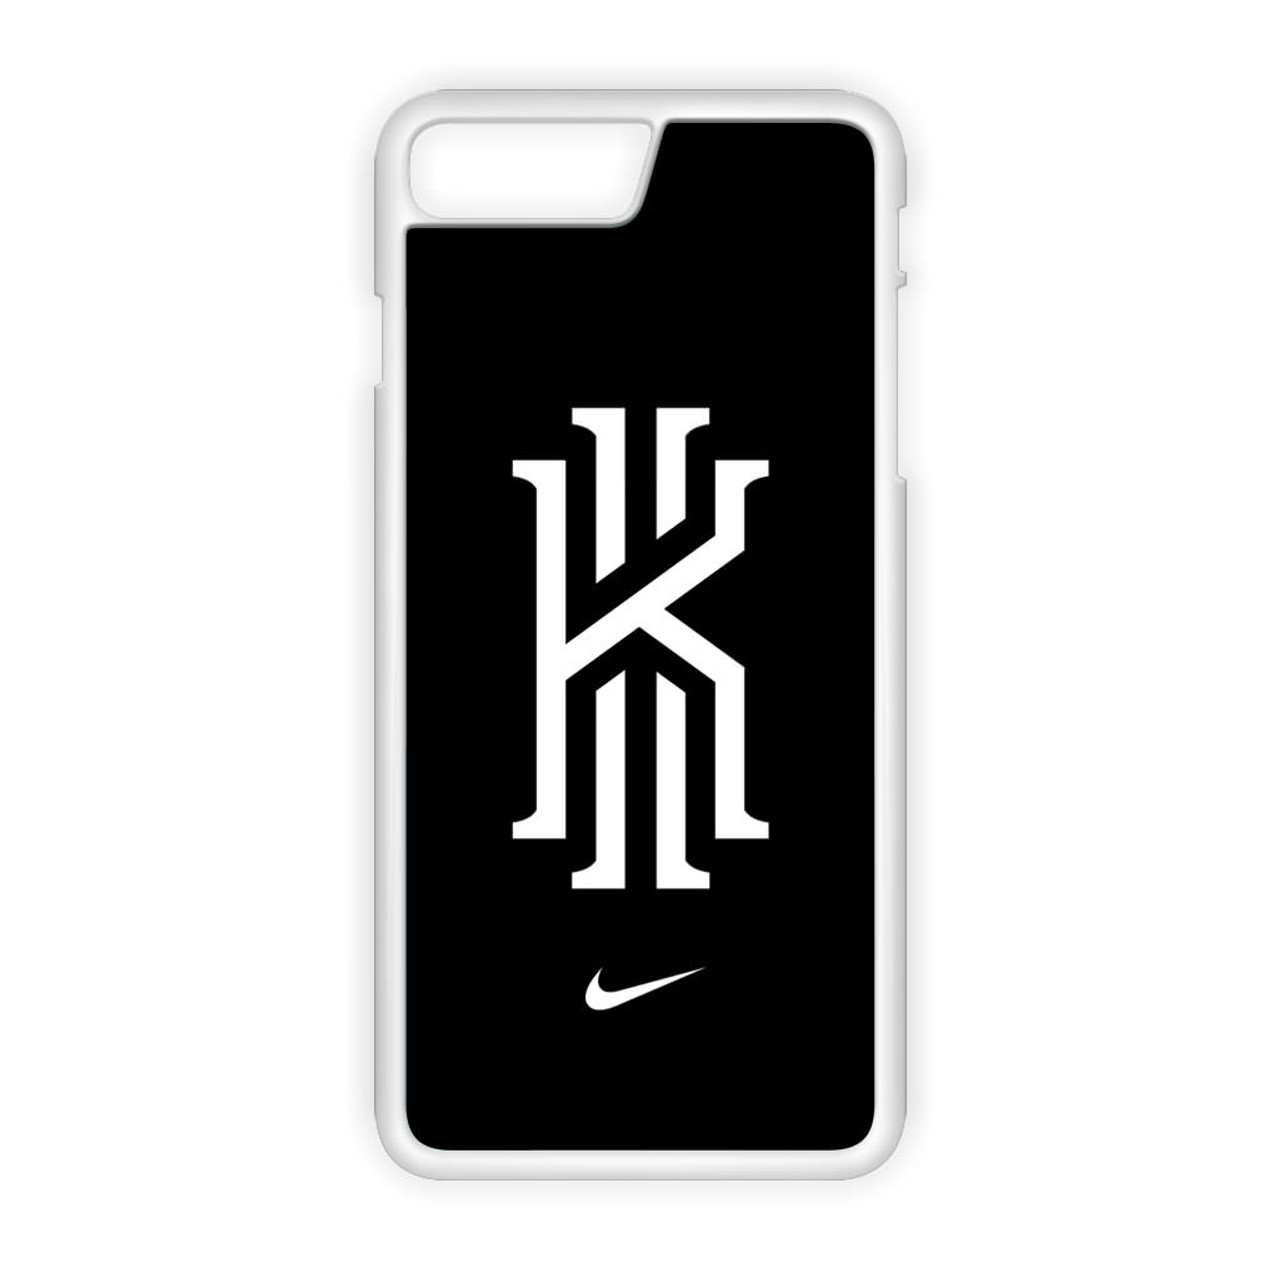 Kyrie Irving Nike Logo Black1 iPhone 7 Plus Case